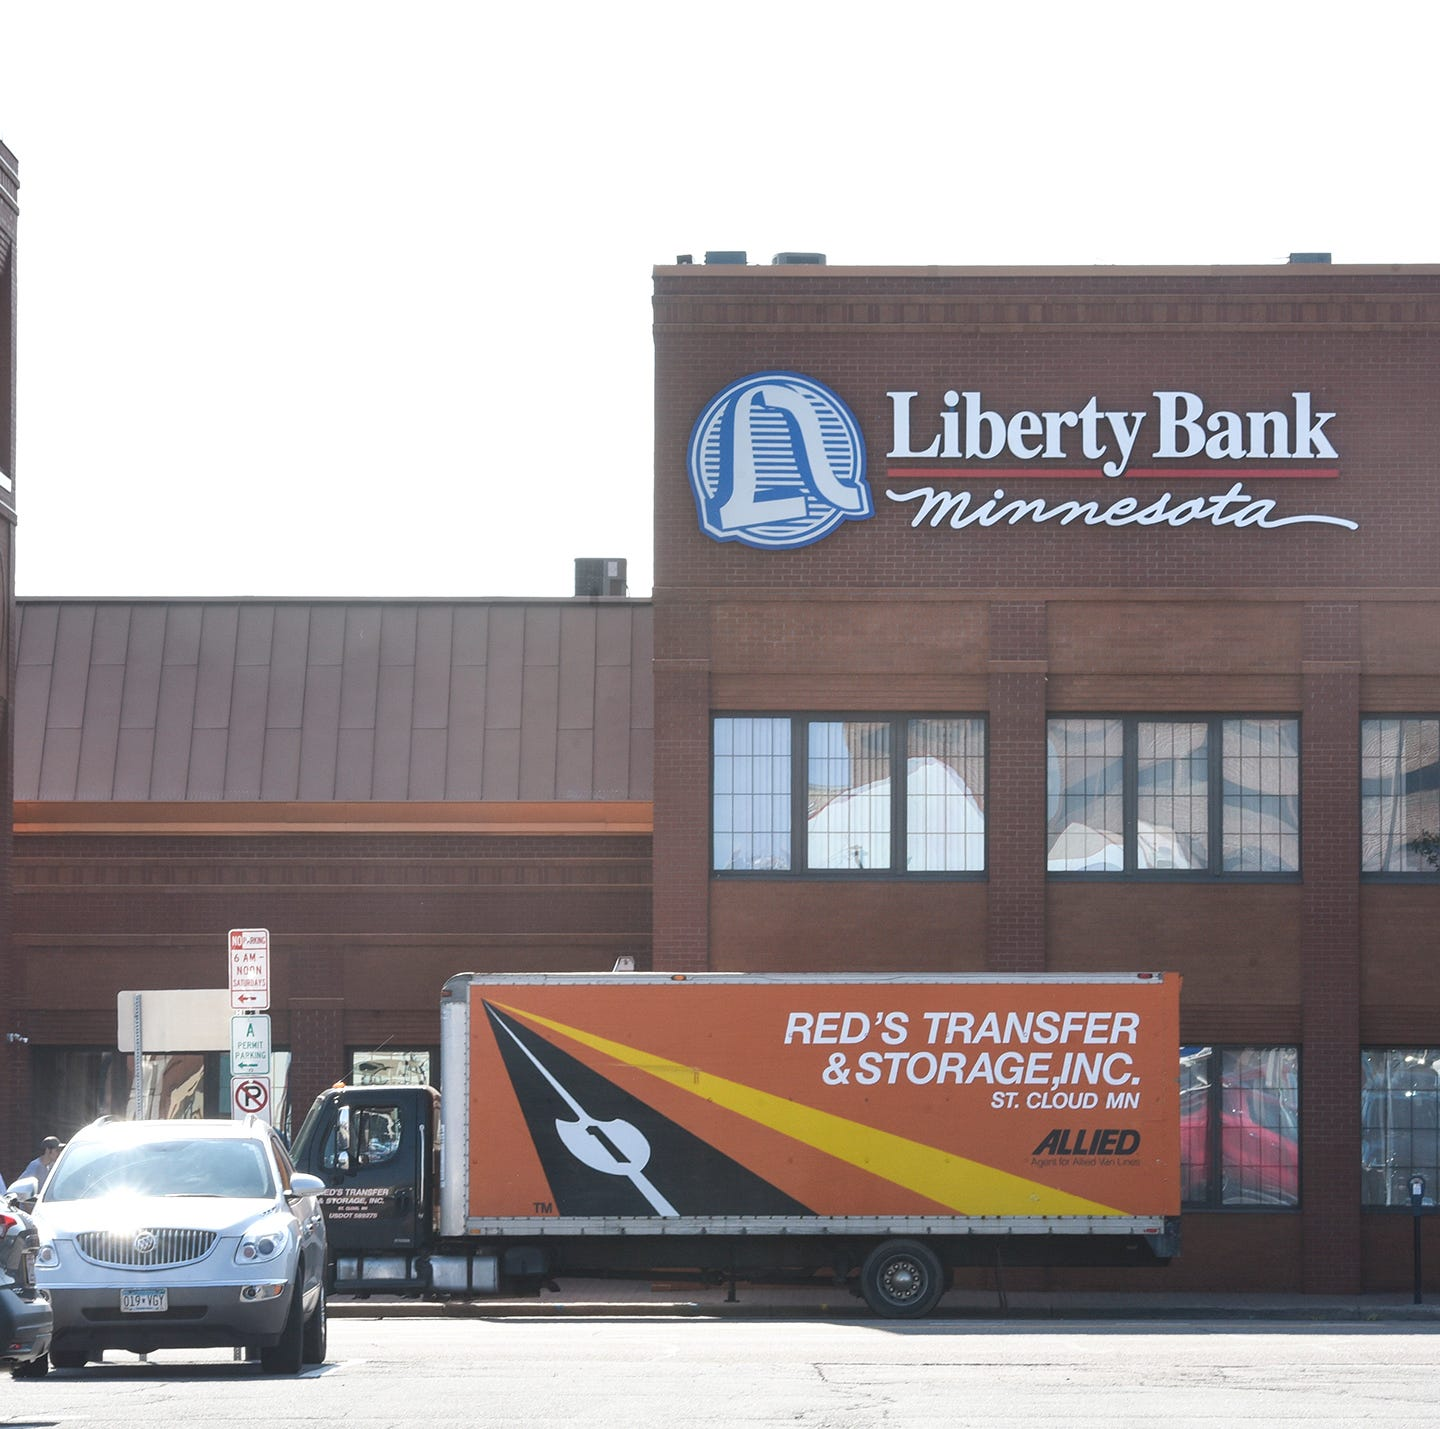 Liberty Bank's generosity creates development opportunity beyond just downtown